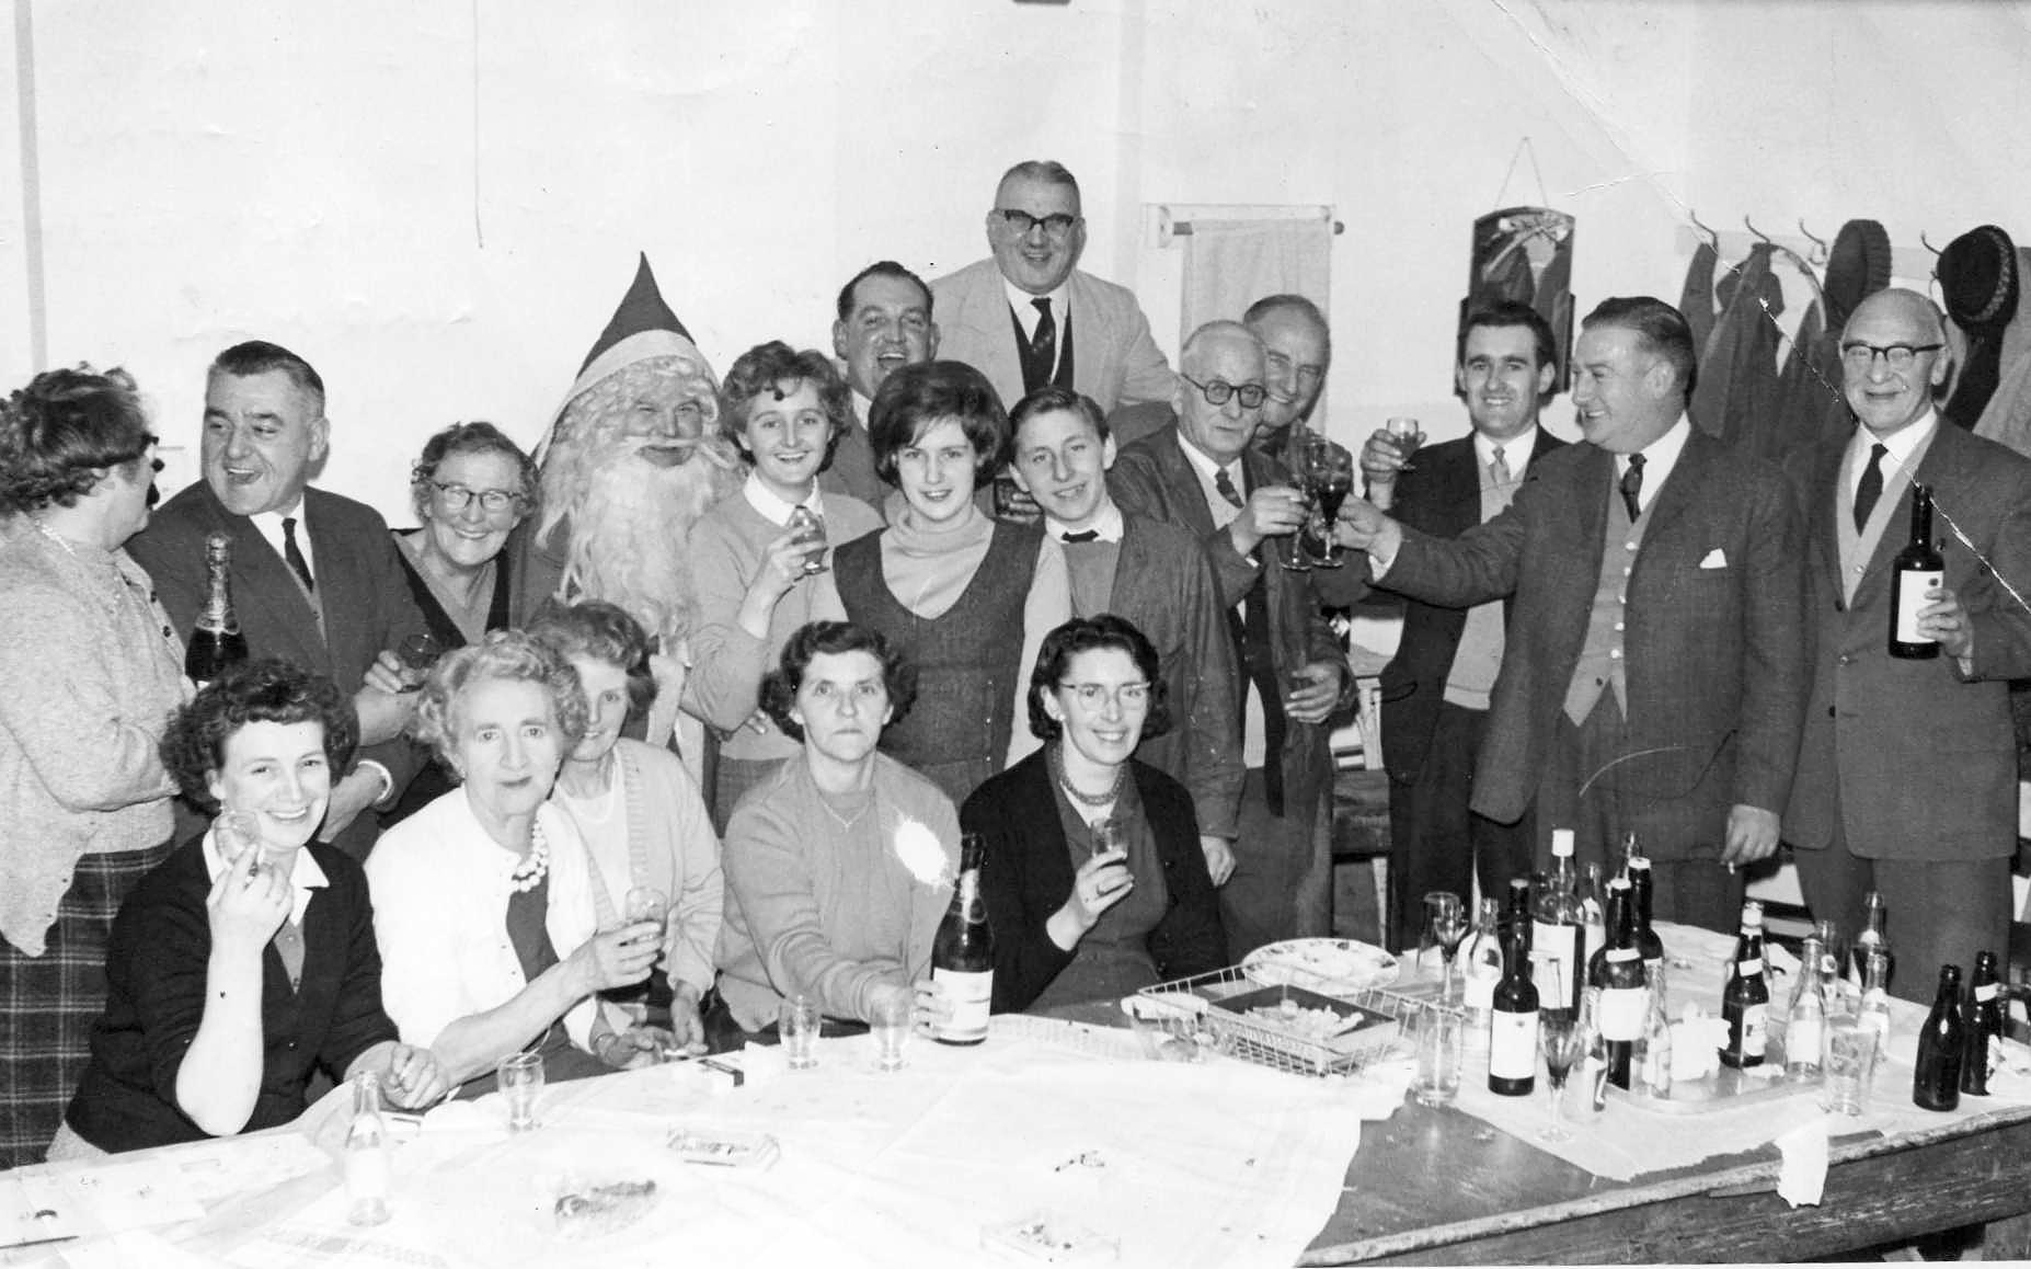 The Pryce-Jones 'Basement and Maintenance' Christmas party from some time in the 1960s.